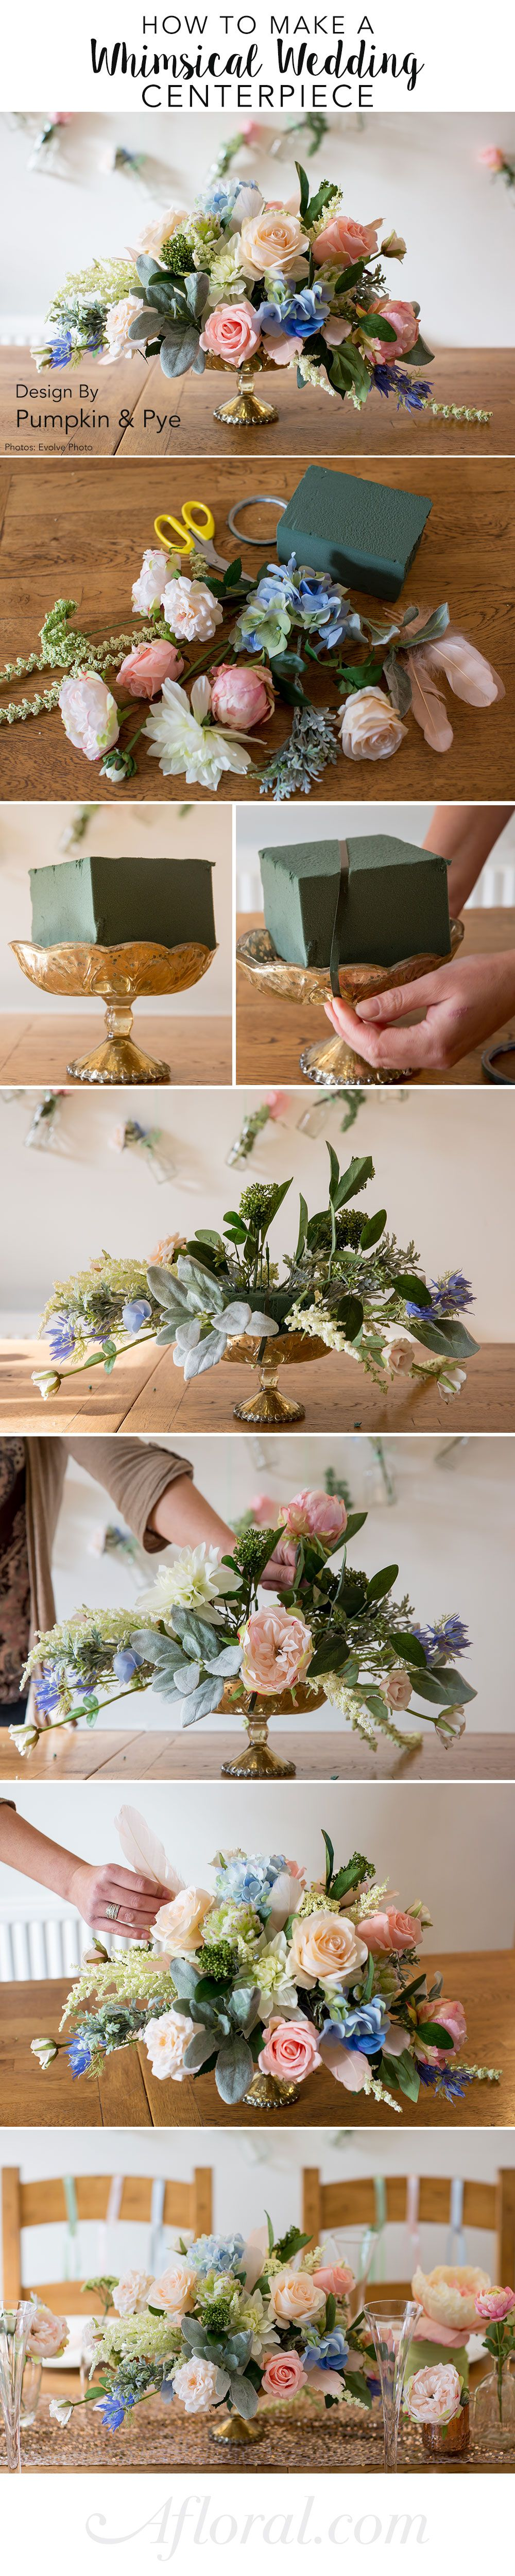 Astounding How To Diy Whimsical Wedding Centerpiece Party Wedding Home Interior And Landscaping Transignezvosmurscom